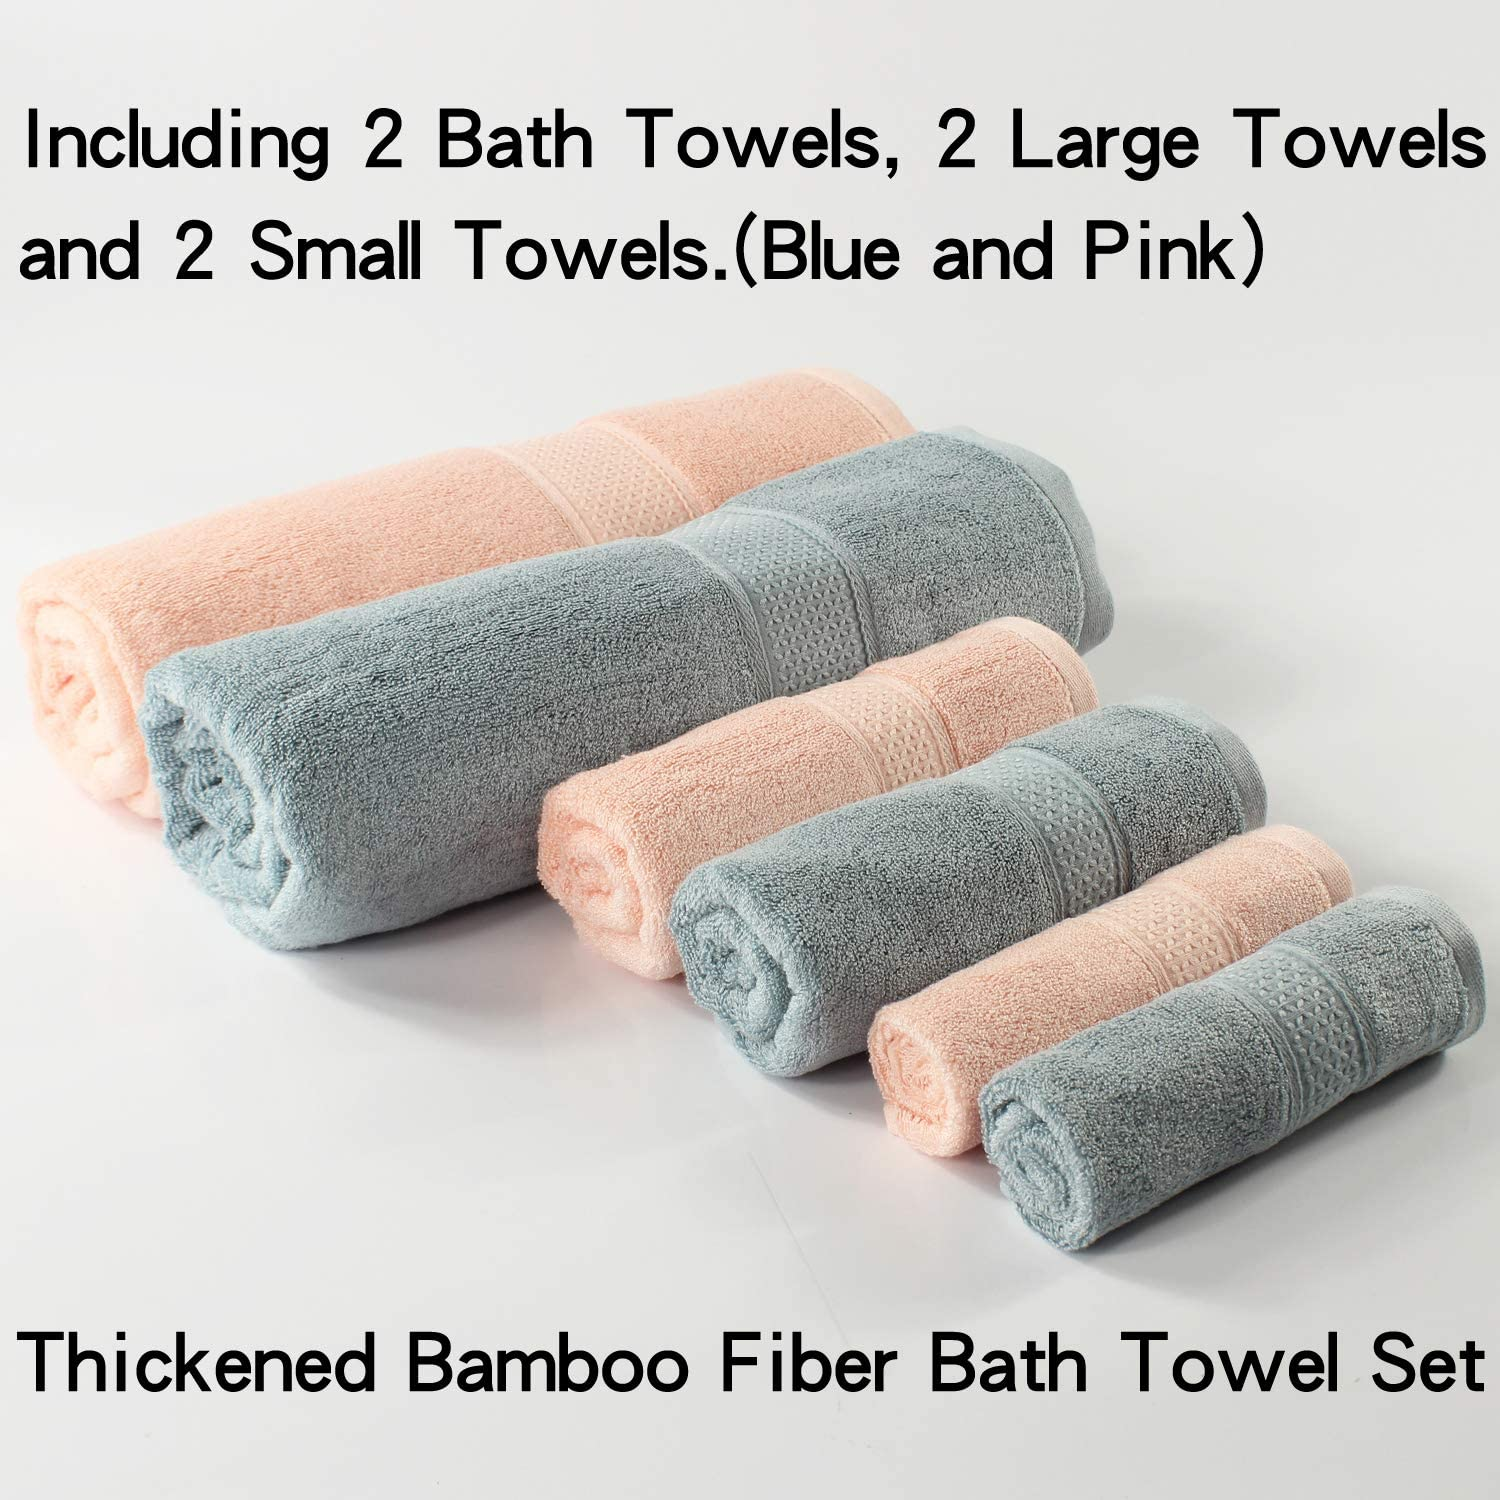 Greenf Home Bath Towels Bamboo Cotton 6-Piece Towel Set Blue/&Pink Ultra Absorbent and Eco-Friendly - Natural 2 Bath Towels, 2 Hand Towels and 2 Square Towels